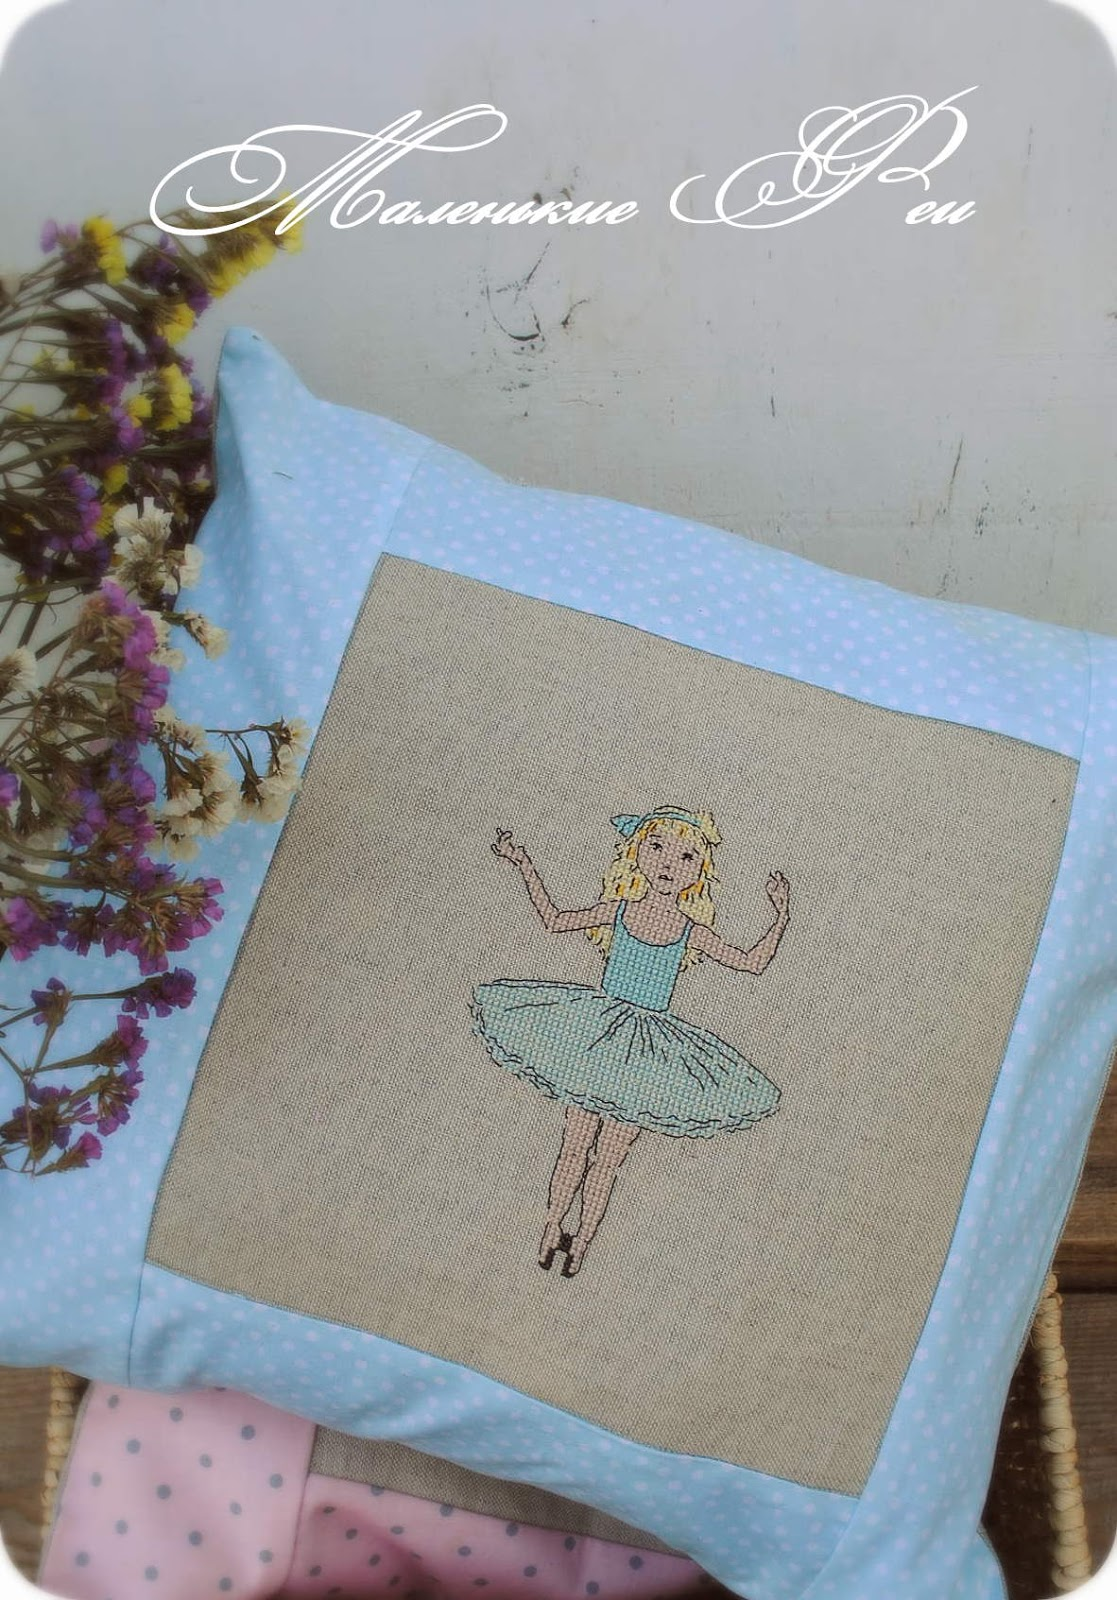 naturally, ballerina, child, children, cotton, girl, gift,  blue, daughter, embroidery, cross-stitch, pillow, handmade